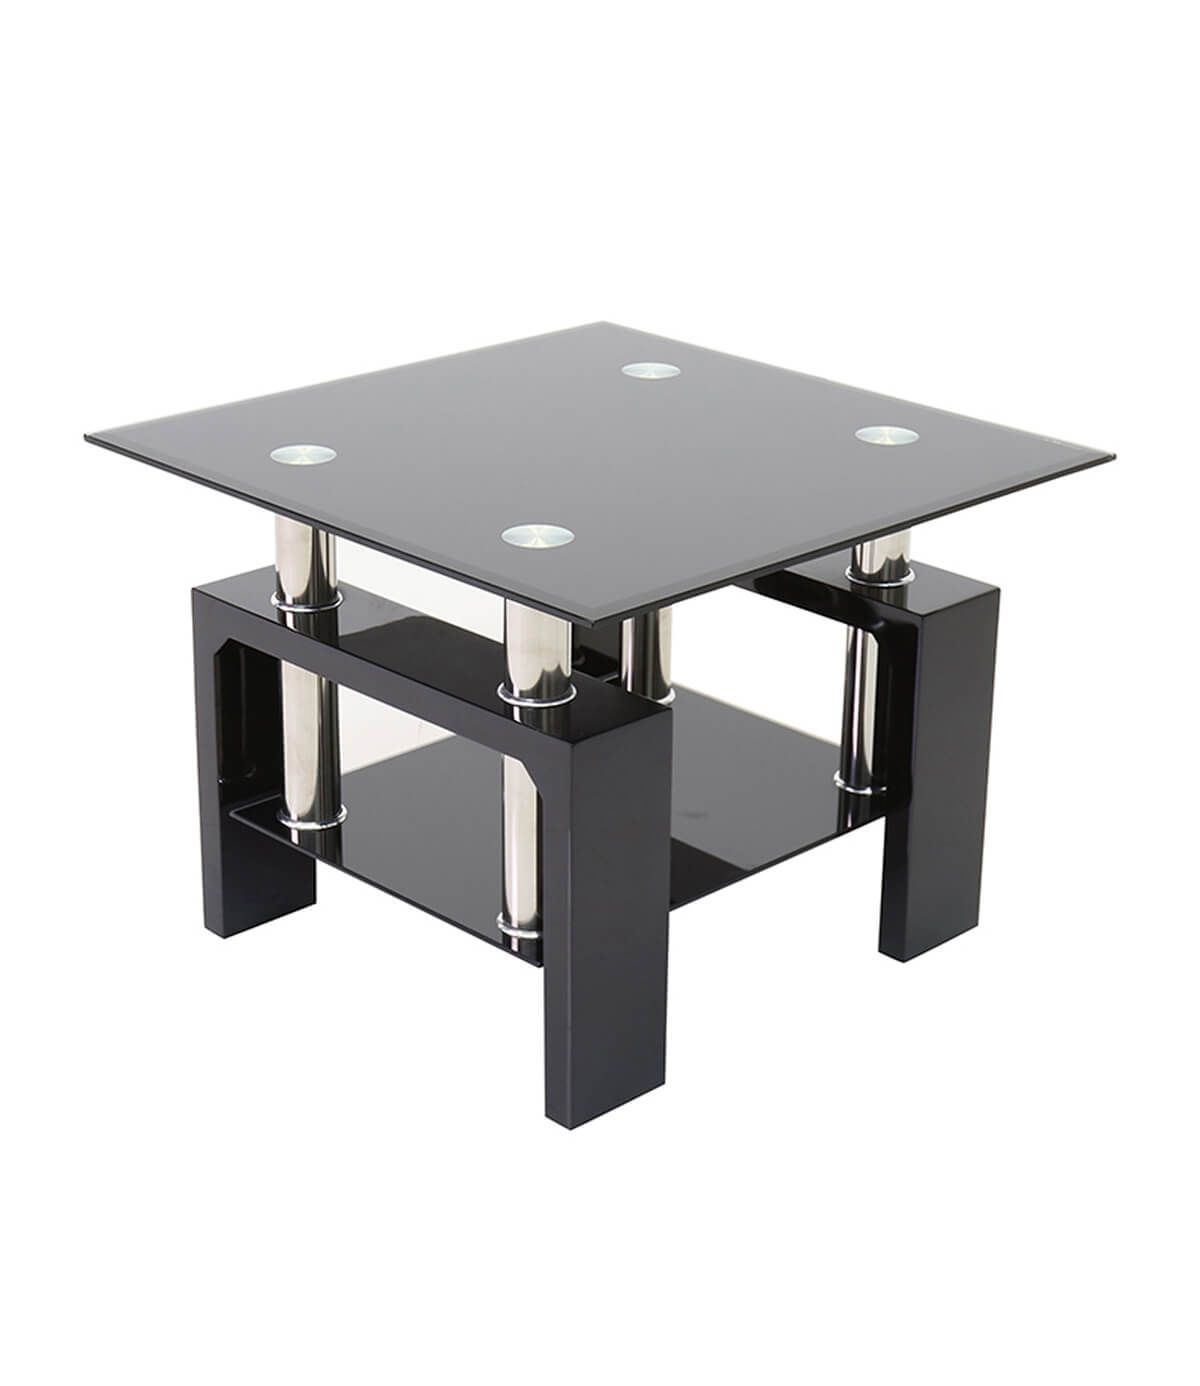 Metro Black Glass Side Table in High